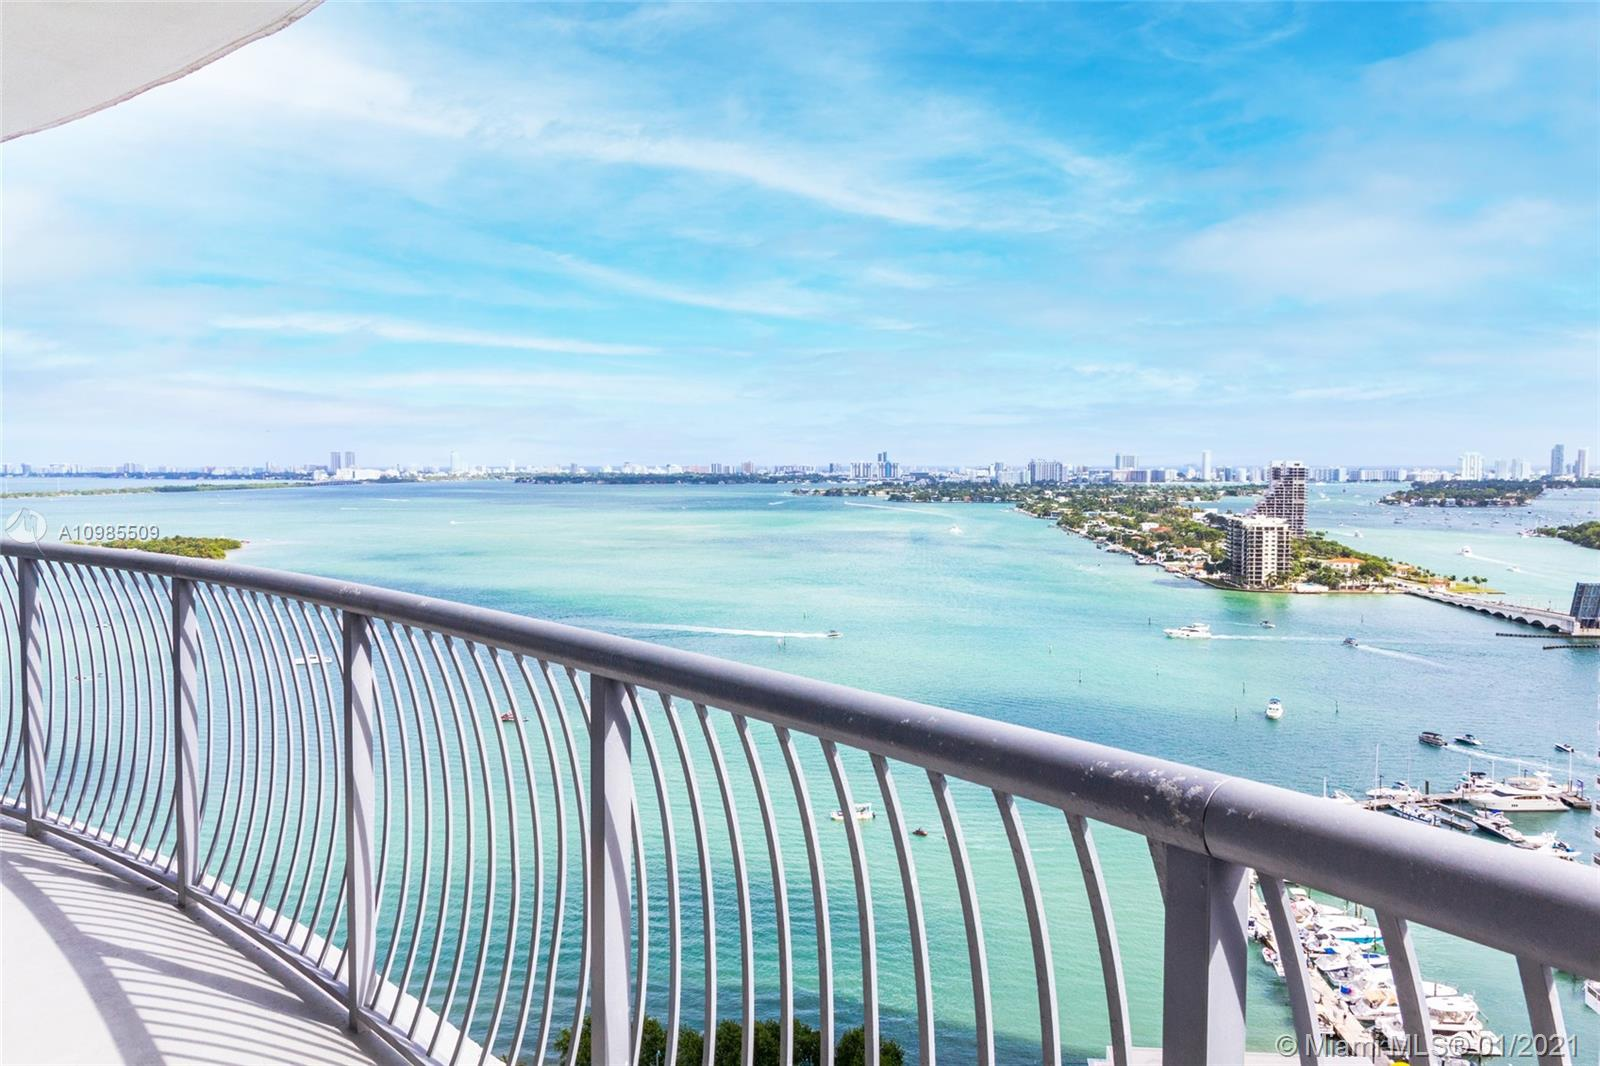 1750 N Bayshore Dr # 2802, Miami, Florida 33132, 2 Bedrooms Bedrooms, ,2 BathroomsBathrooms,Residential,For Sale,1750 N Bayshore Dr # 2802,A10985509